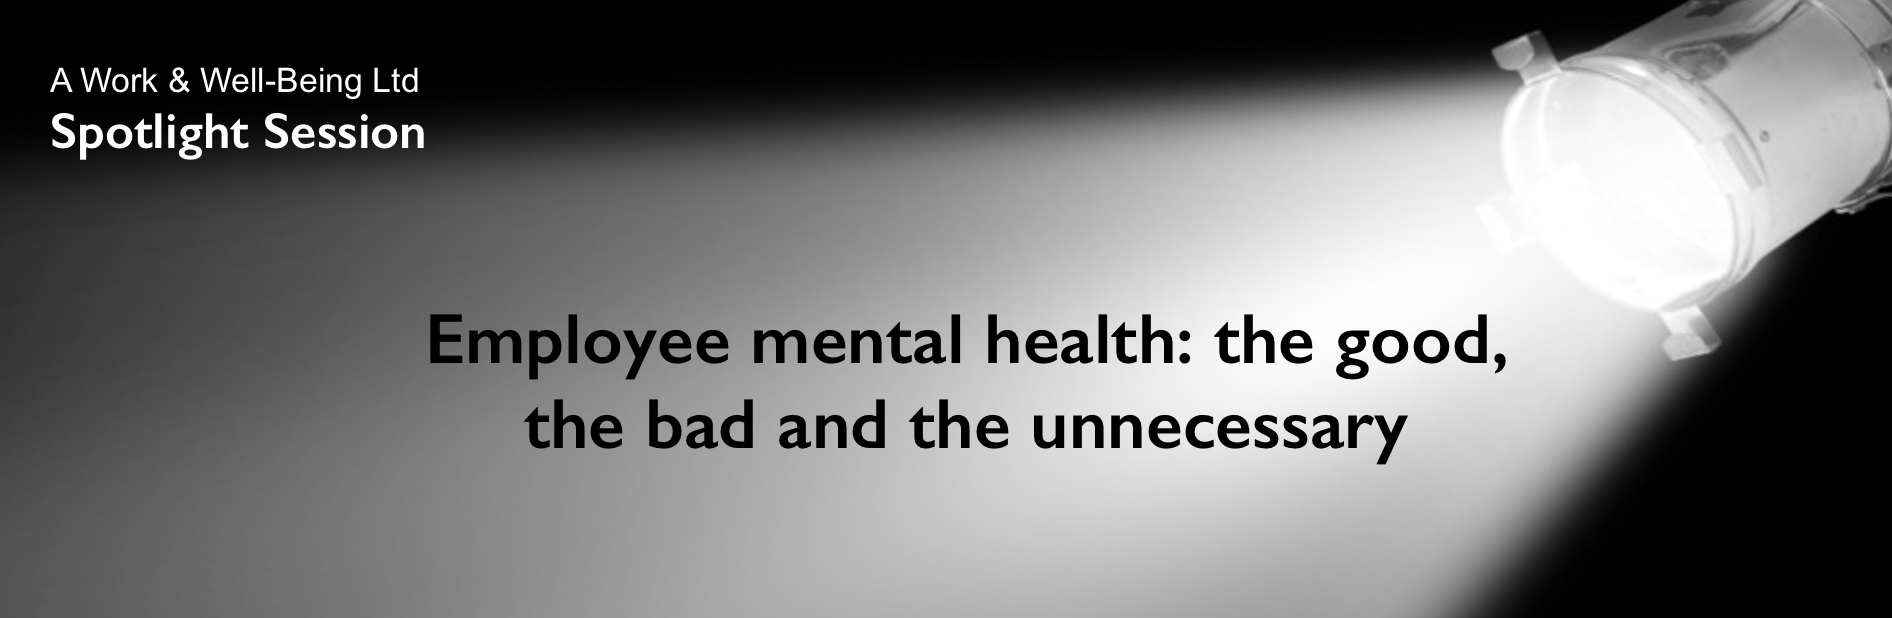 Employee mental health: the good, the bad and the unnecessary